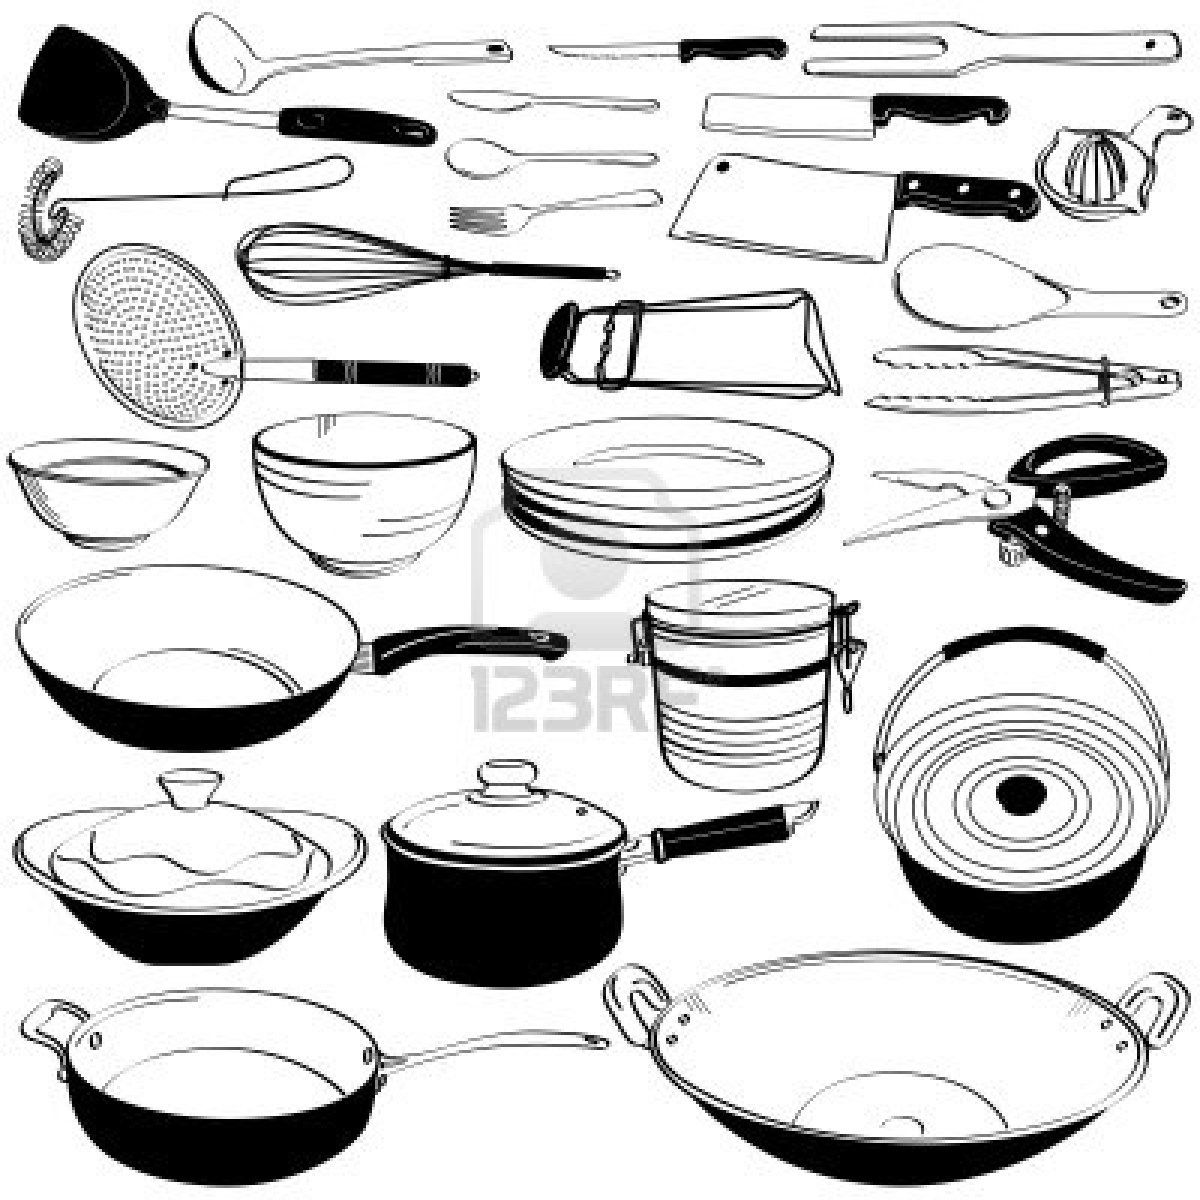 95 ideas Coloring Pages For Kitchen Items on kankanwzcom